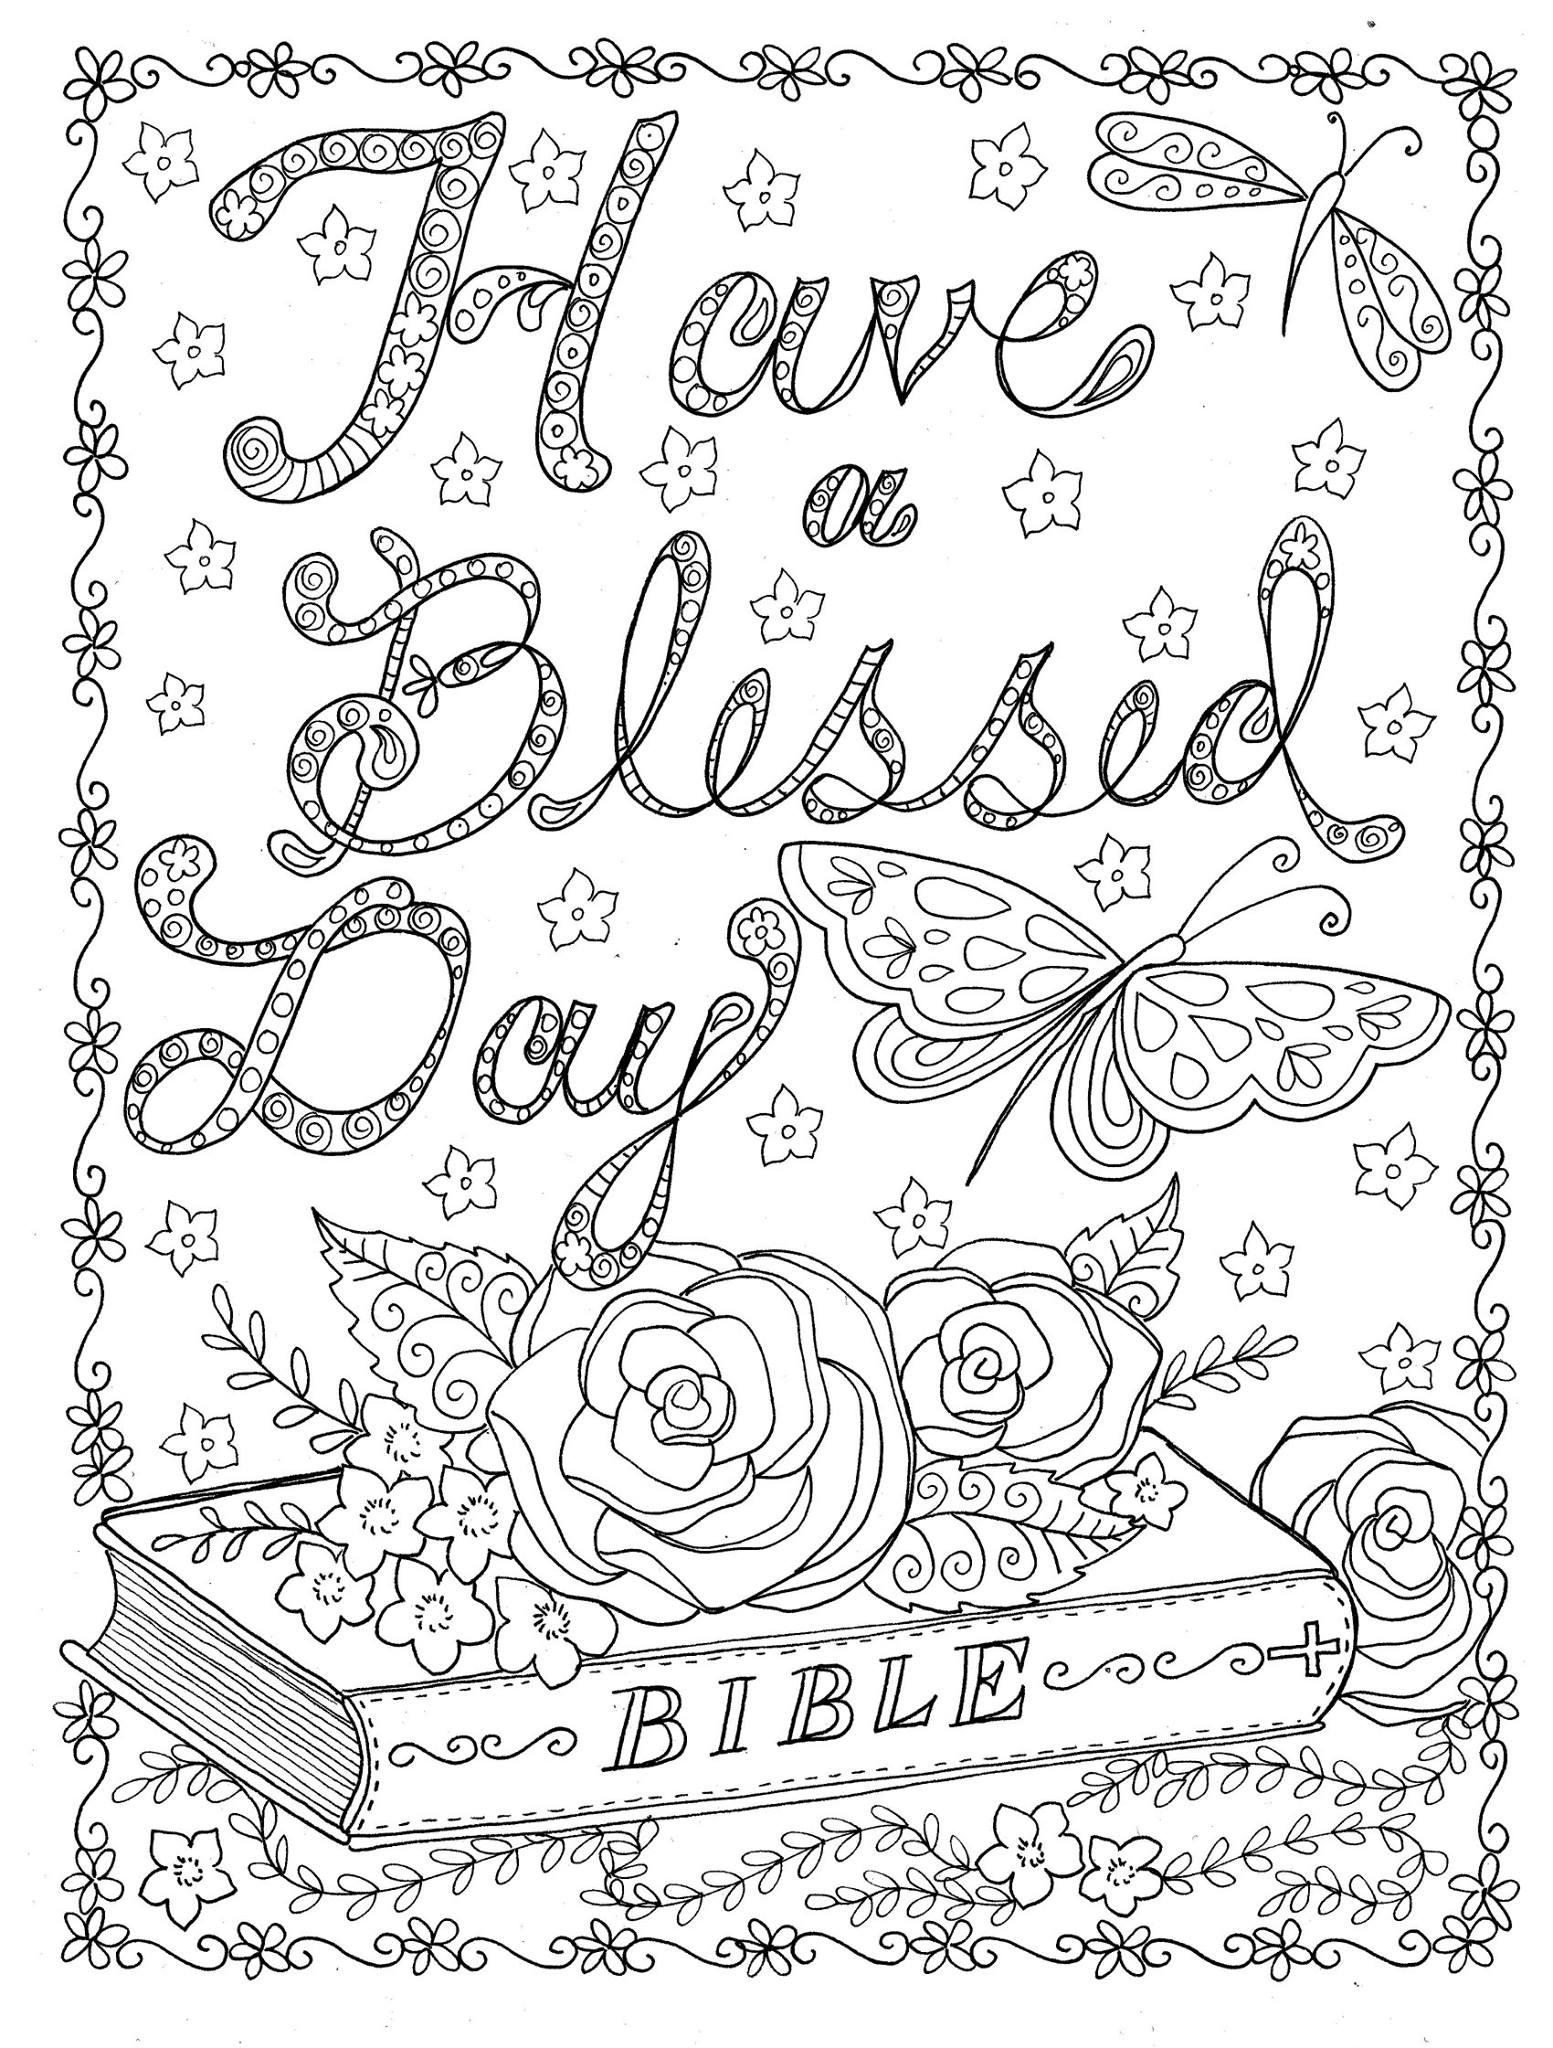 free coloring pages for adults printable free printable butterfly adult coloring pages printable free adults coloring for pages